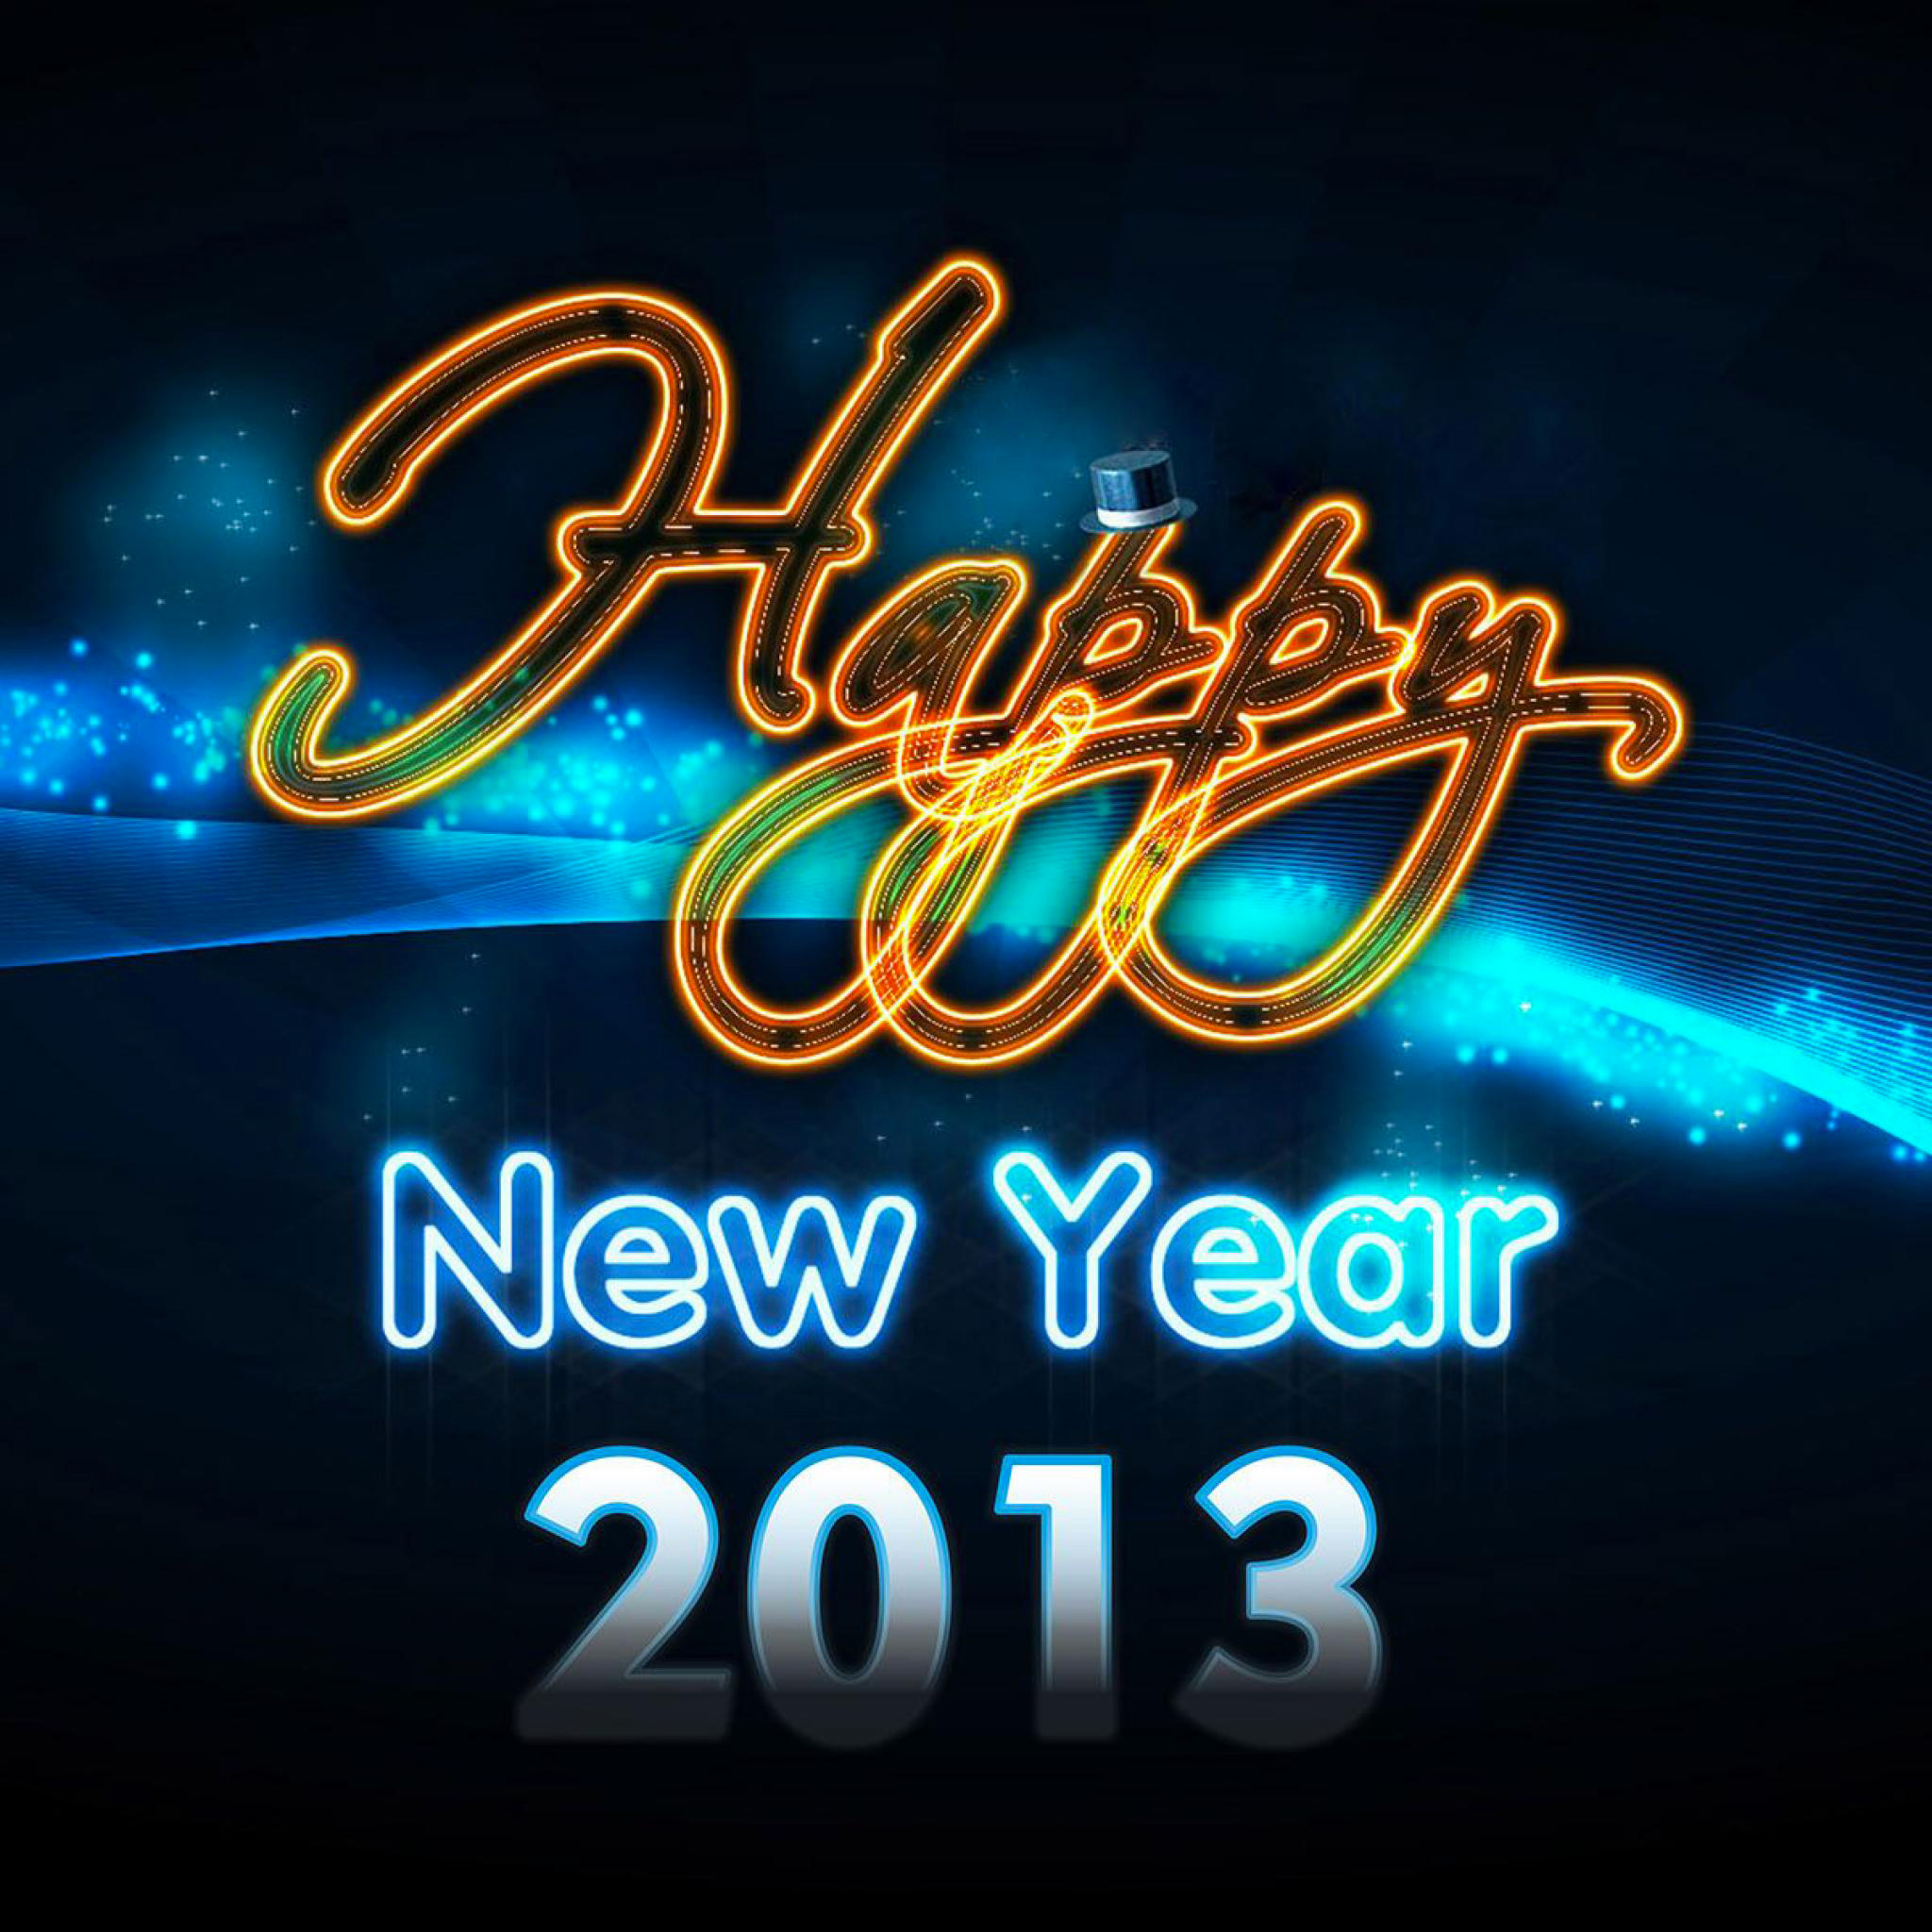 Happy New Year 2013 Ipad Retina Wallpaper For Iphone X 8 7 6